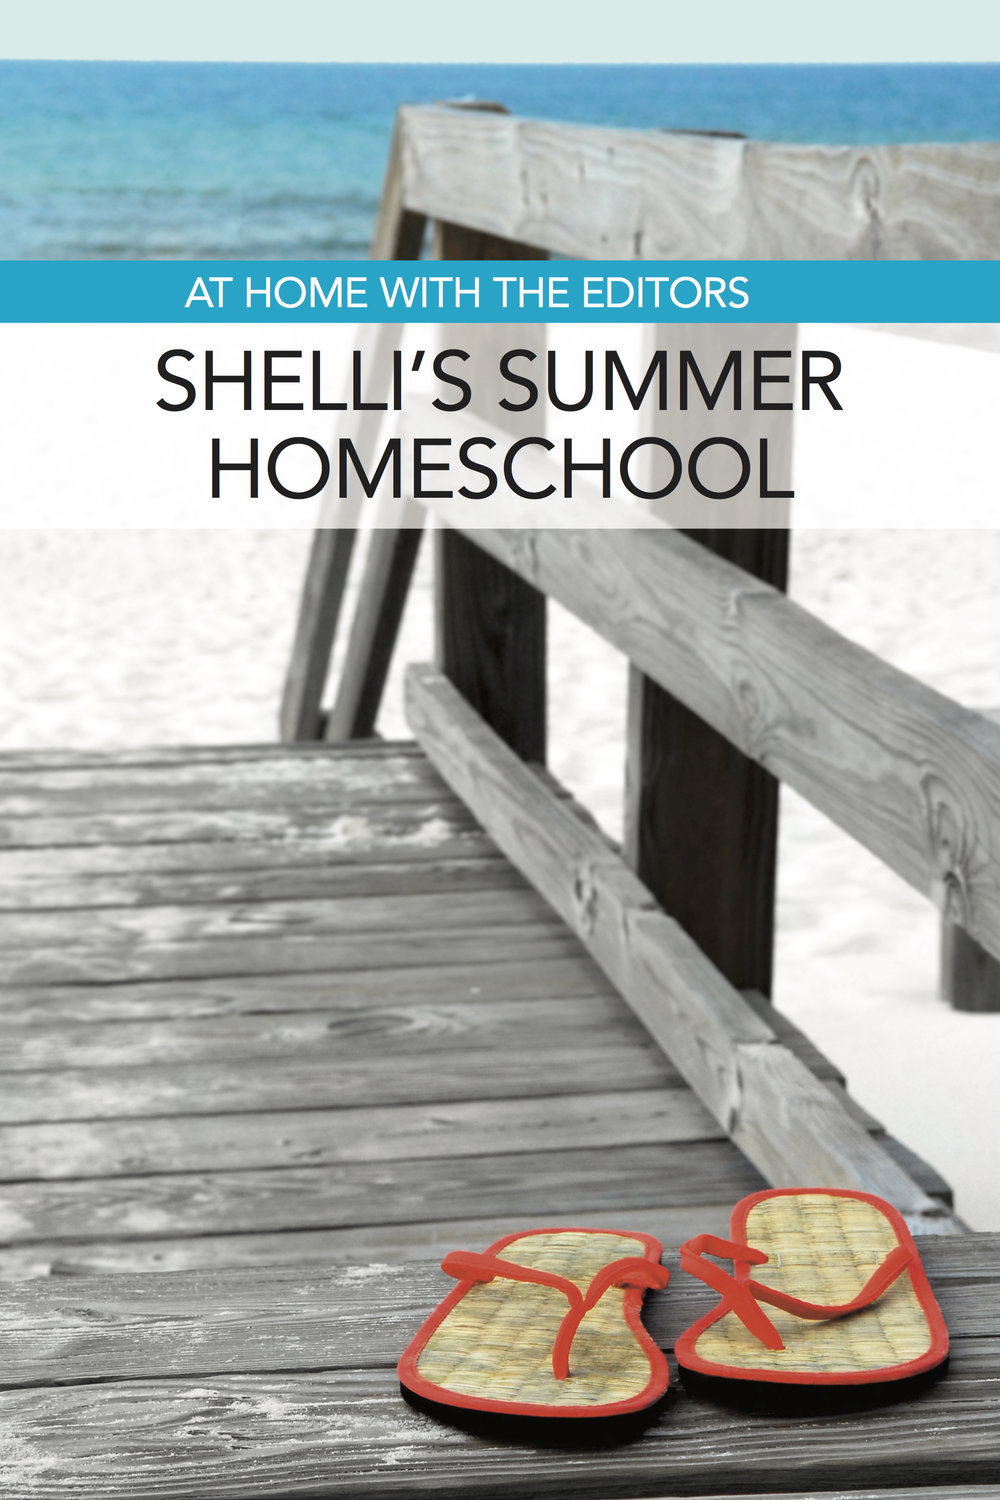 At Home with the Editors: Our Summer Homeschool